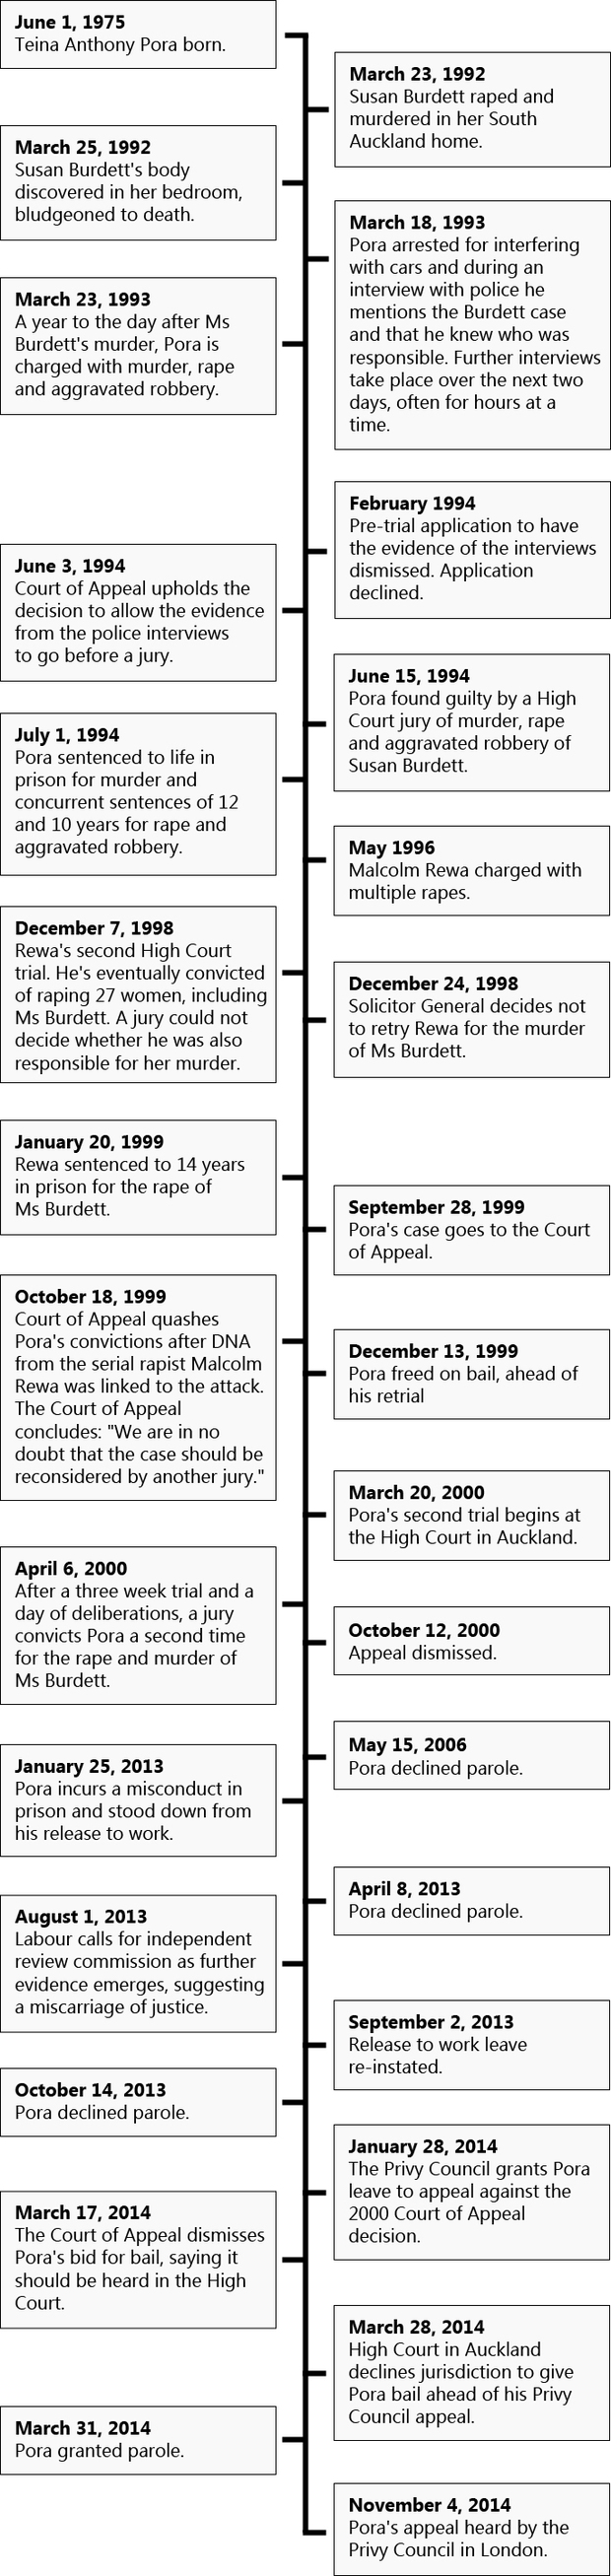 A timeline of Teina Pora's case and life